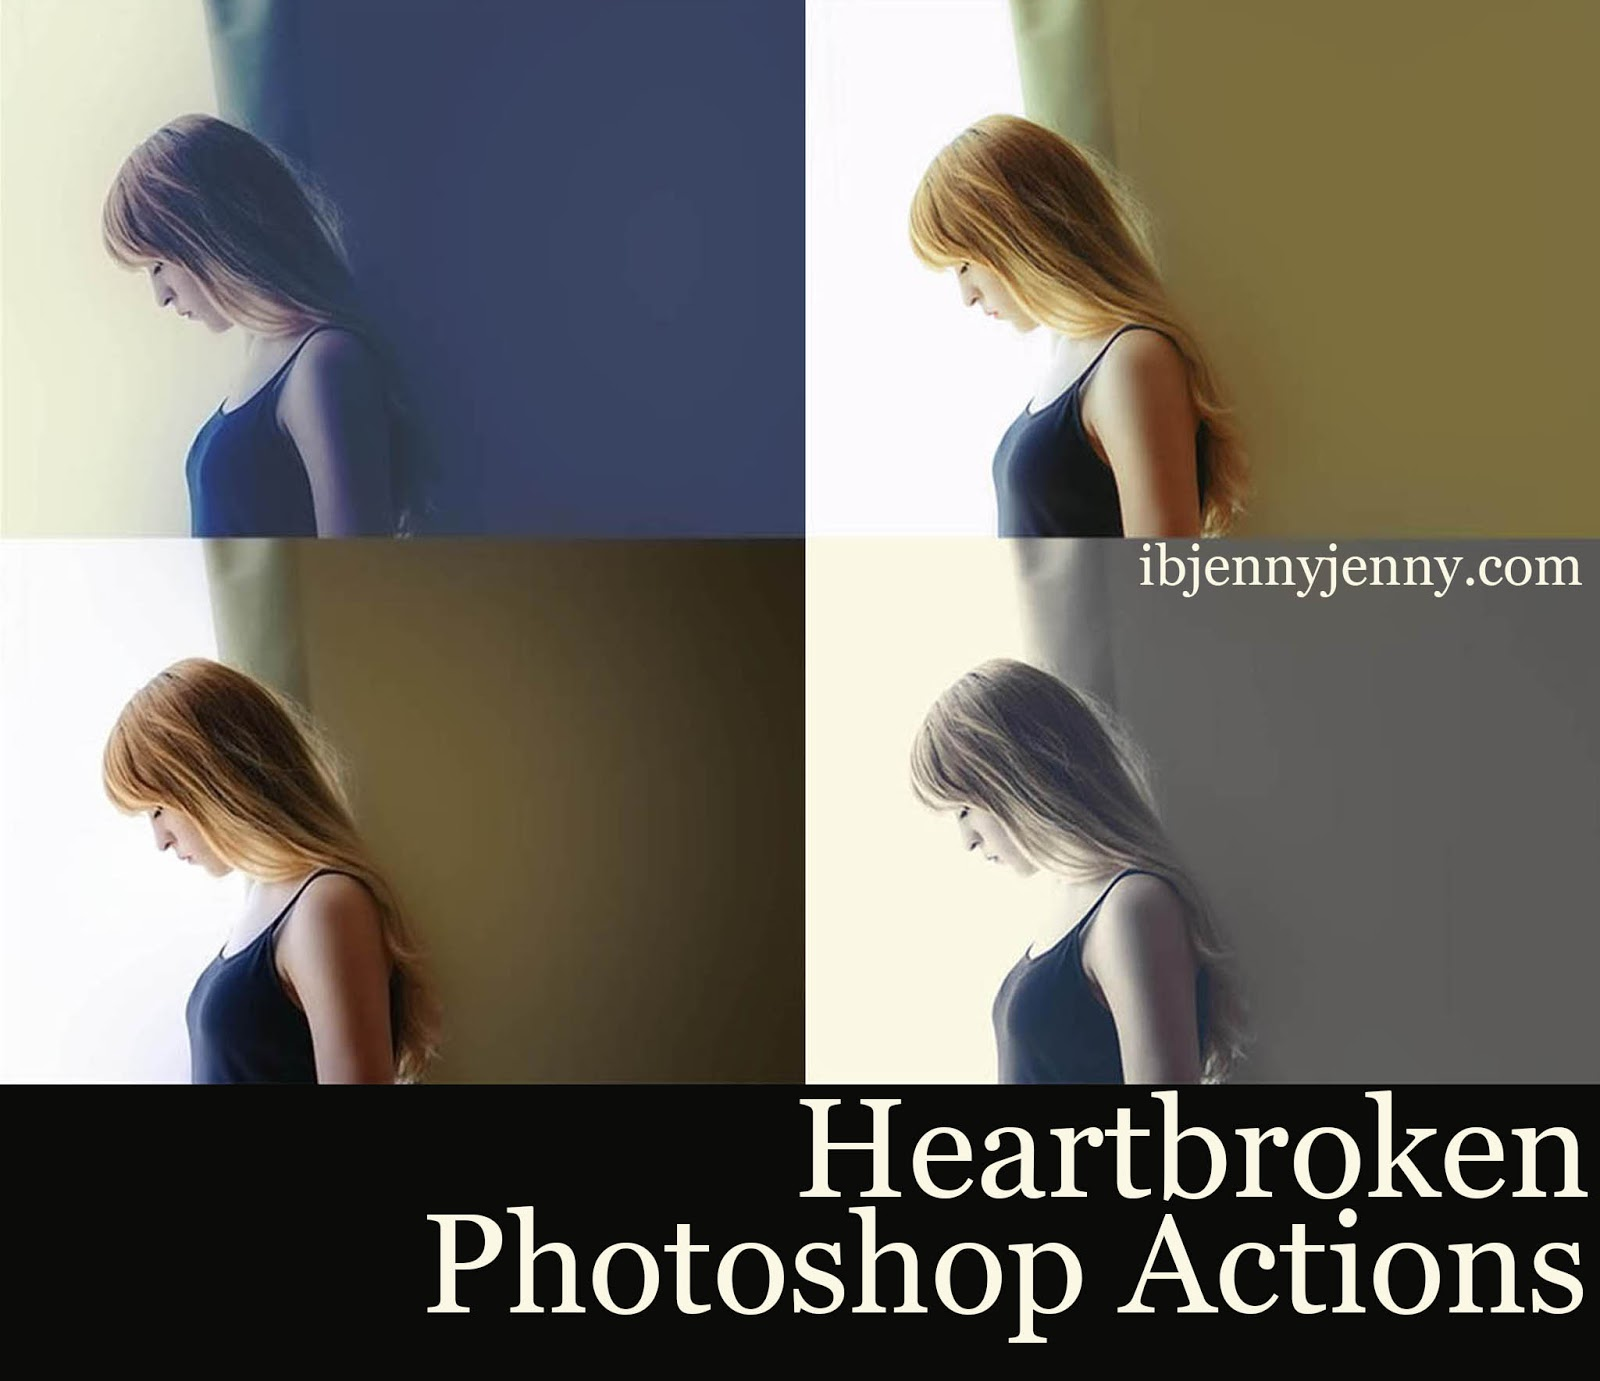 Heartbroken Photoshop Actions